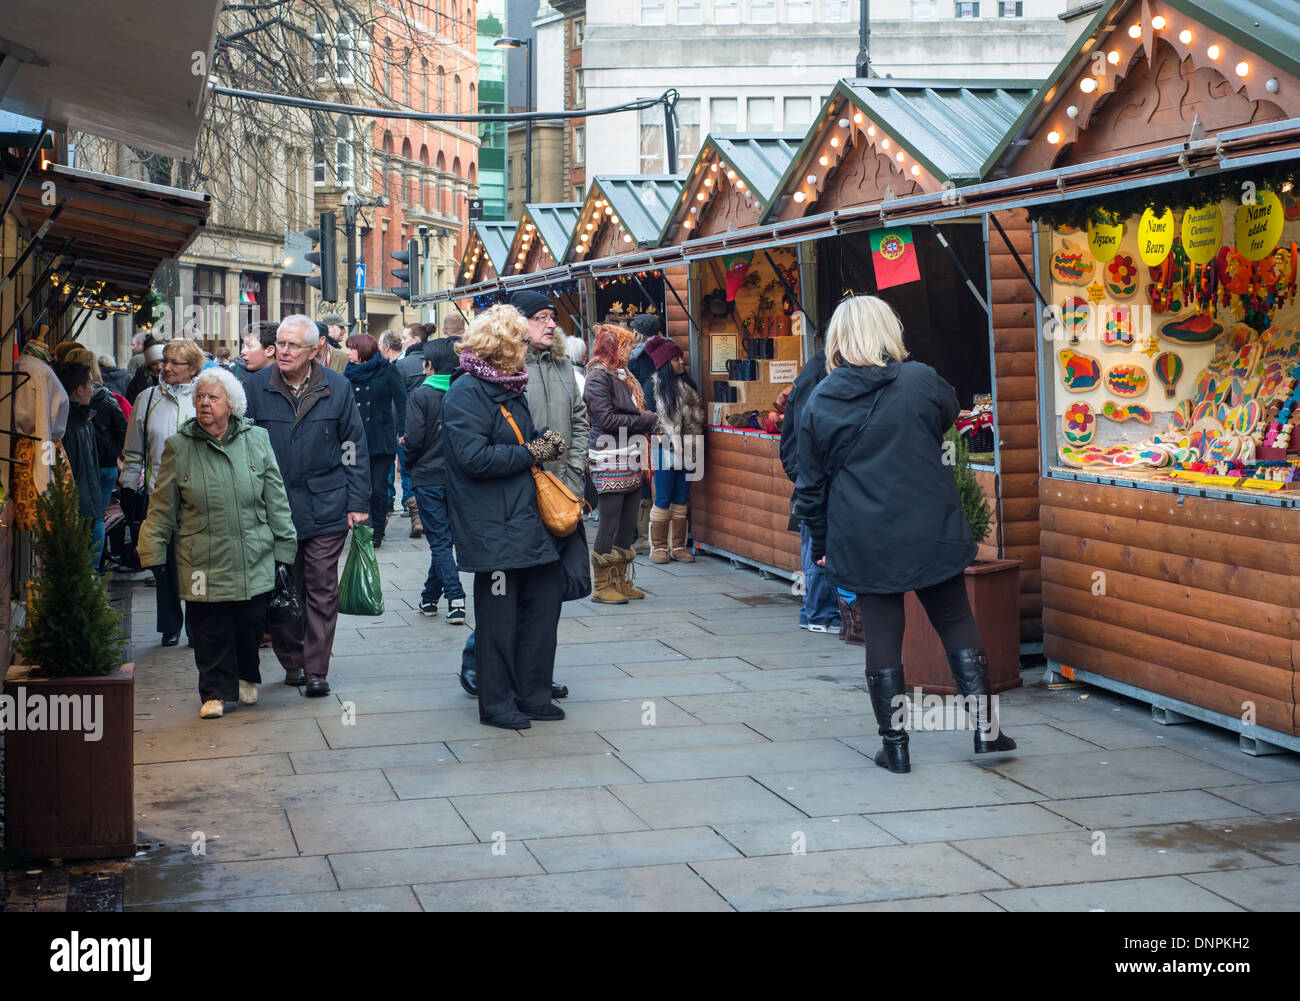 Visitors to Manchester Christmas market in England, UK - Stock Image